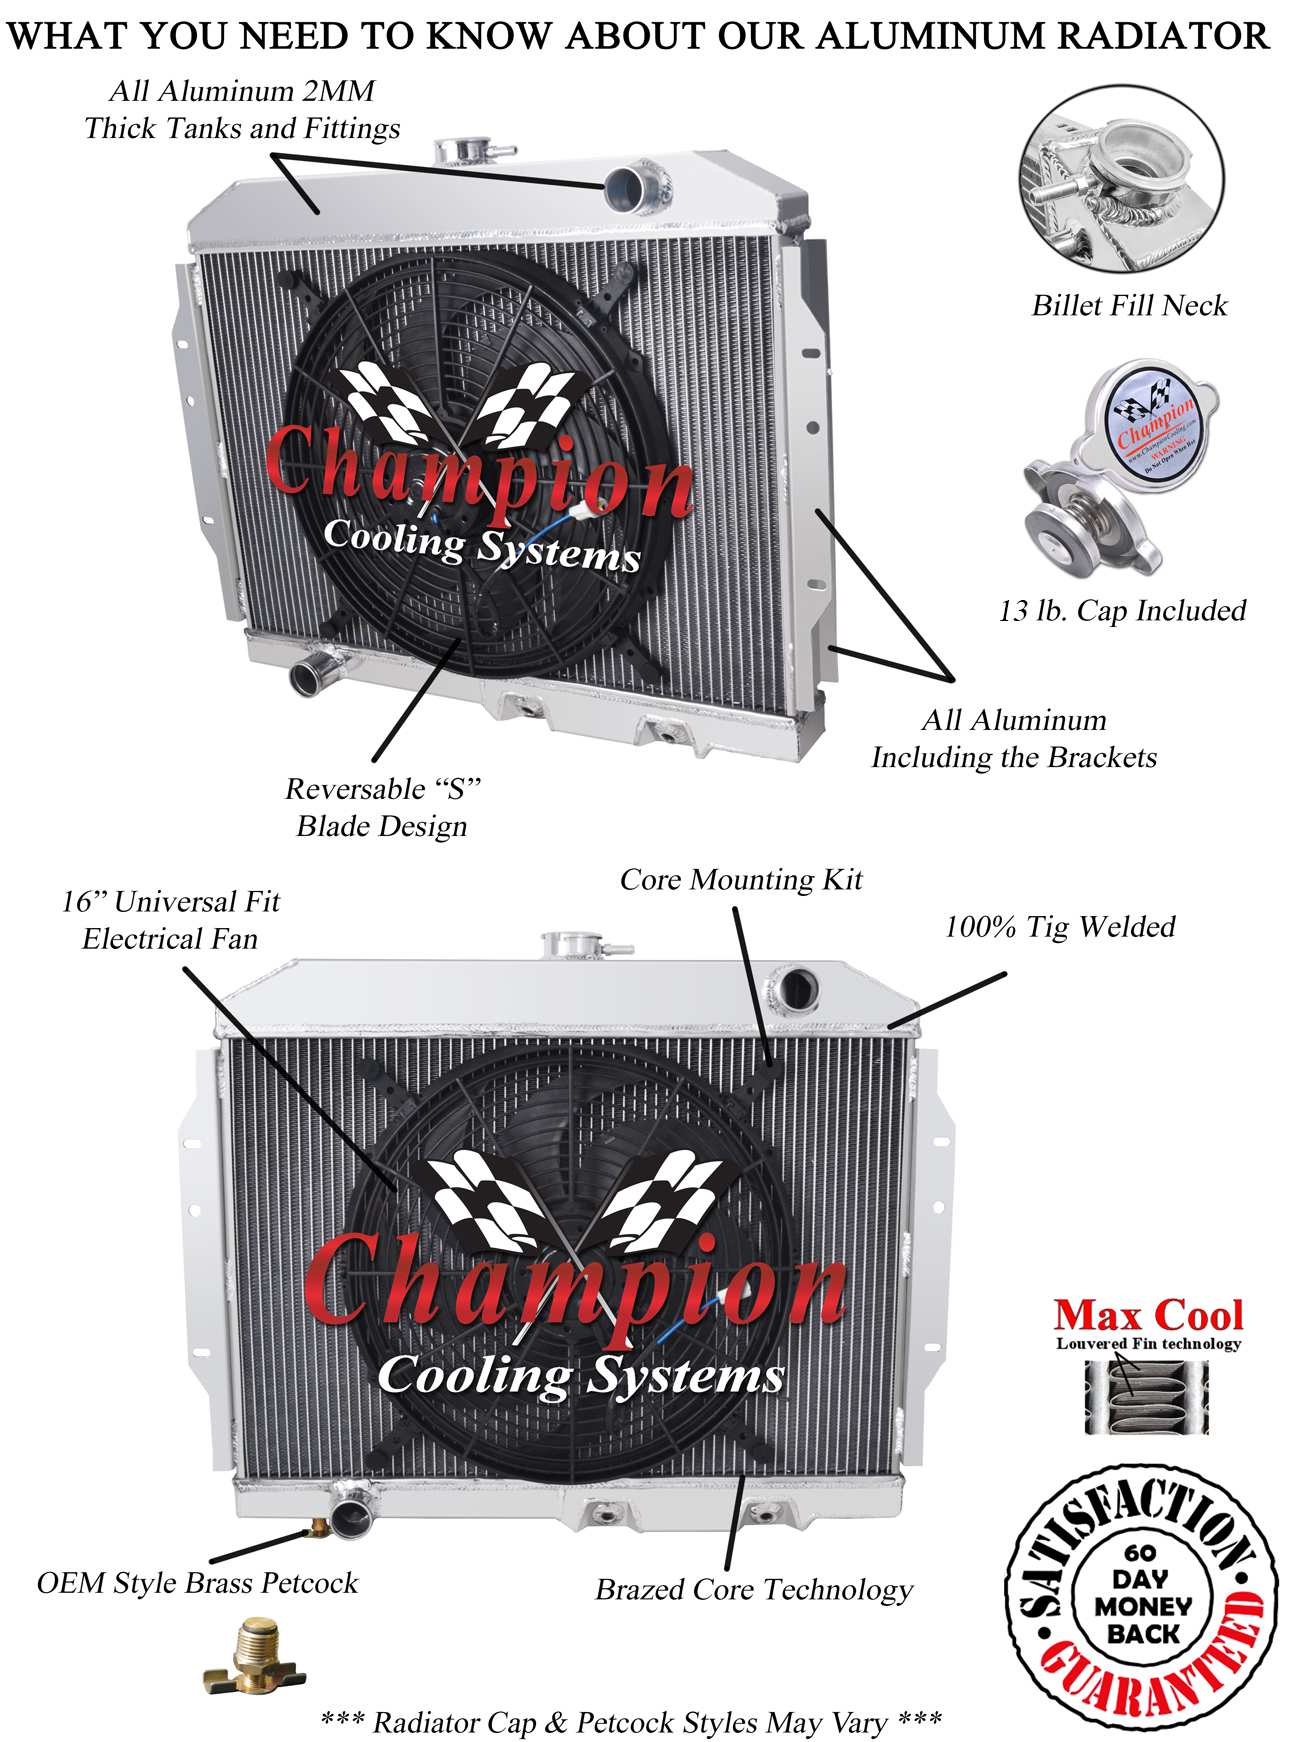 https://www.championcooling.com/photos/Photos%20White/With%20Fans/Combos/407/16/407_1f_d_w.jpg